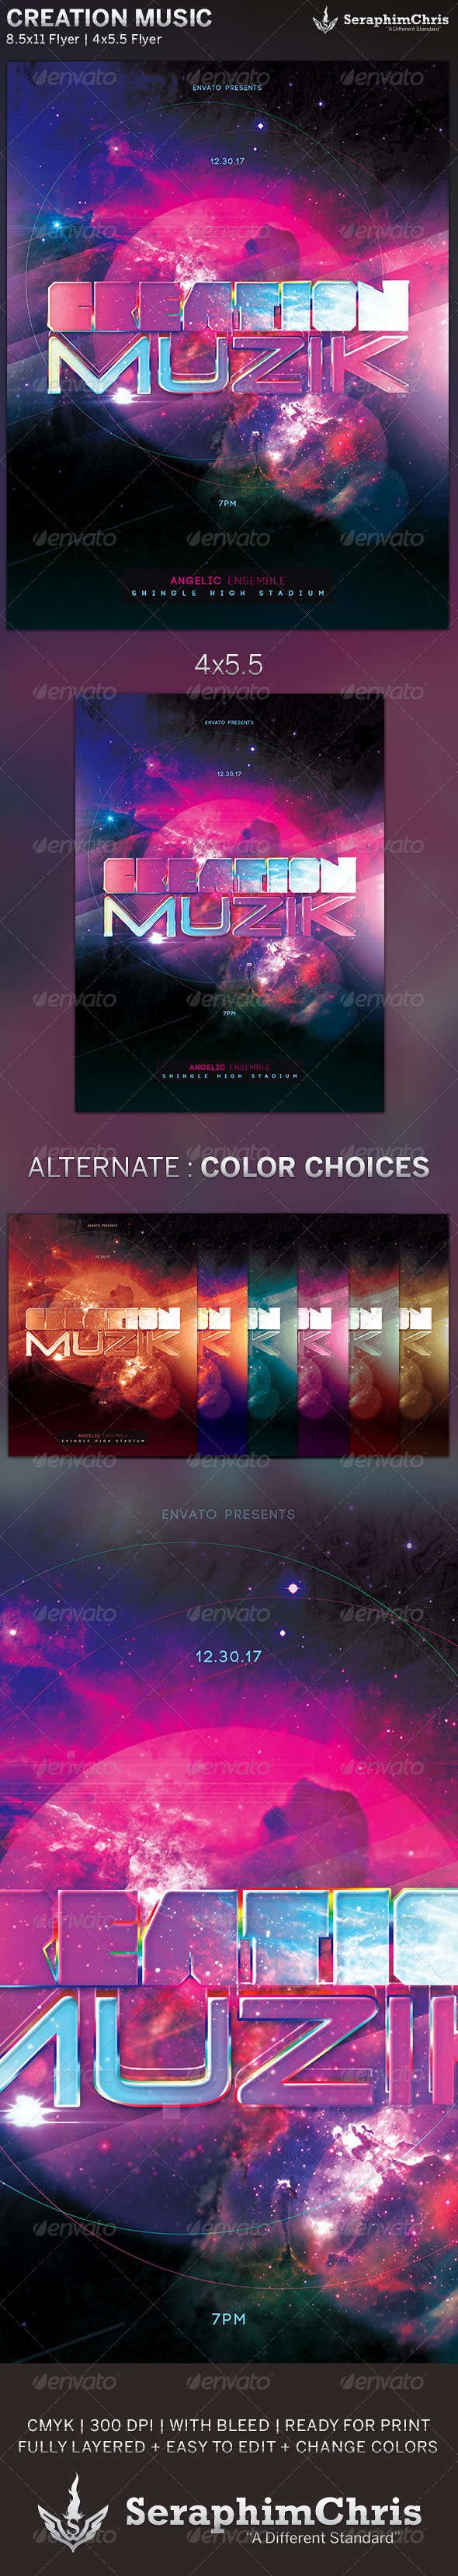 GraphicRiver Creation Music Event Flyer Template 5875653